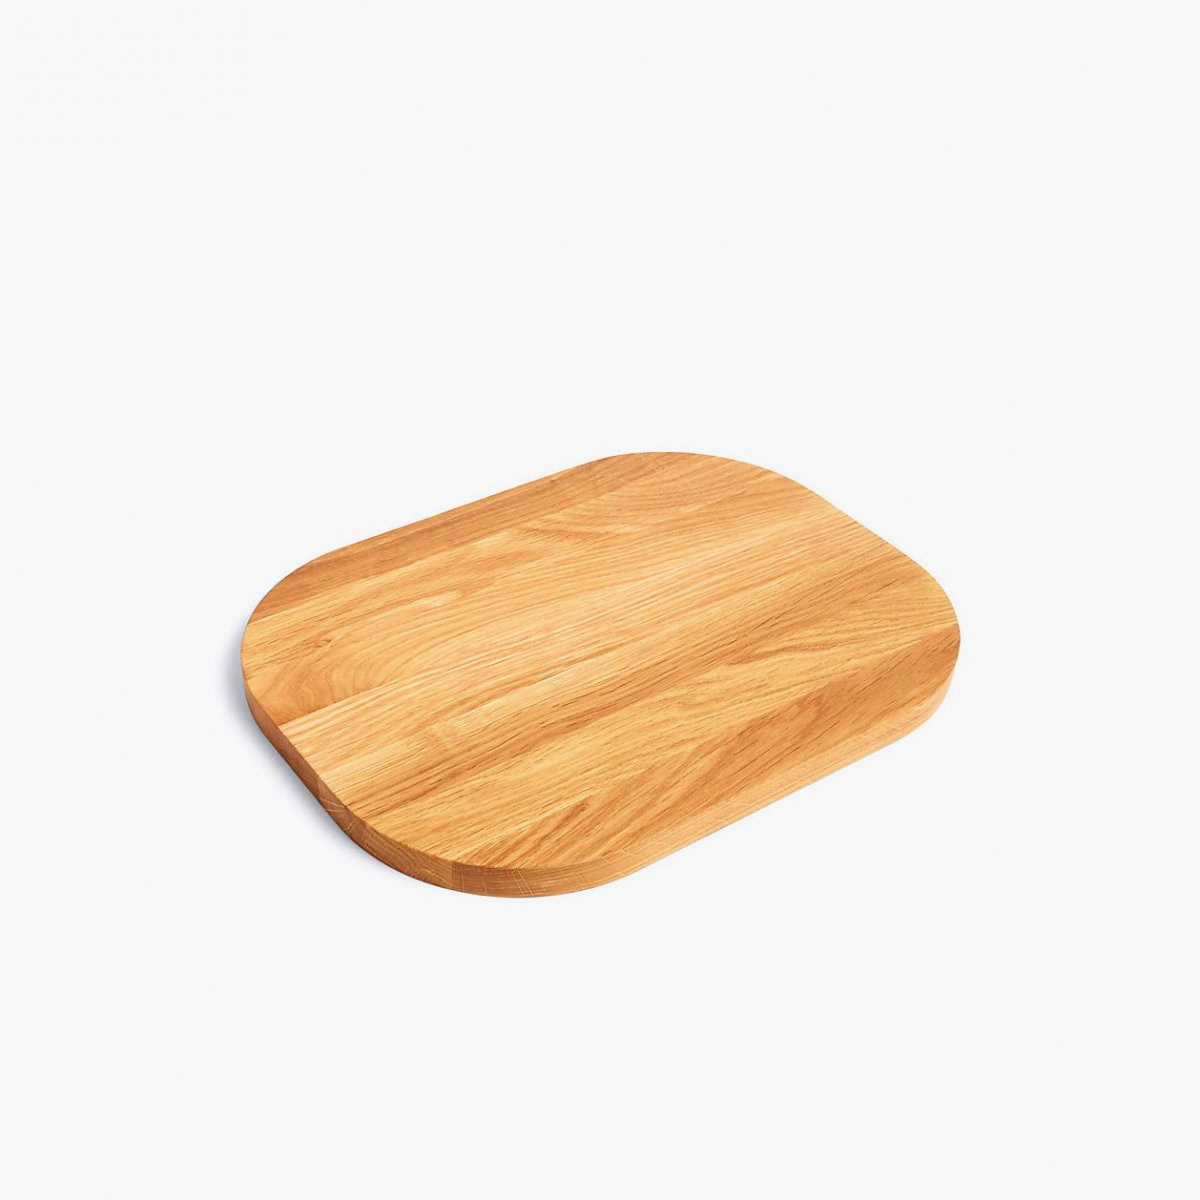 Oak Chopping Board.